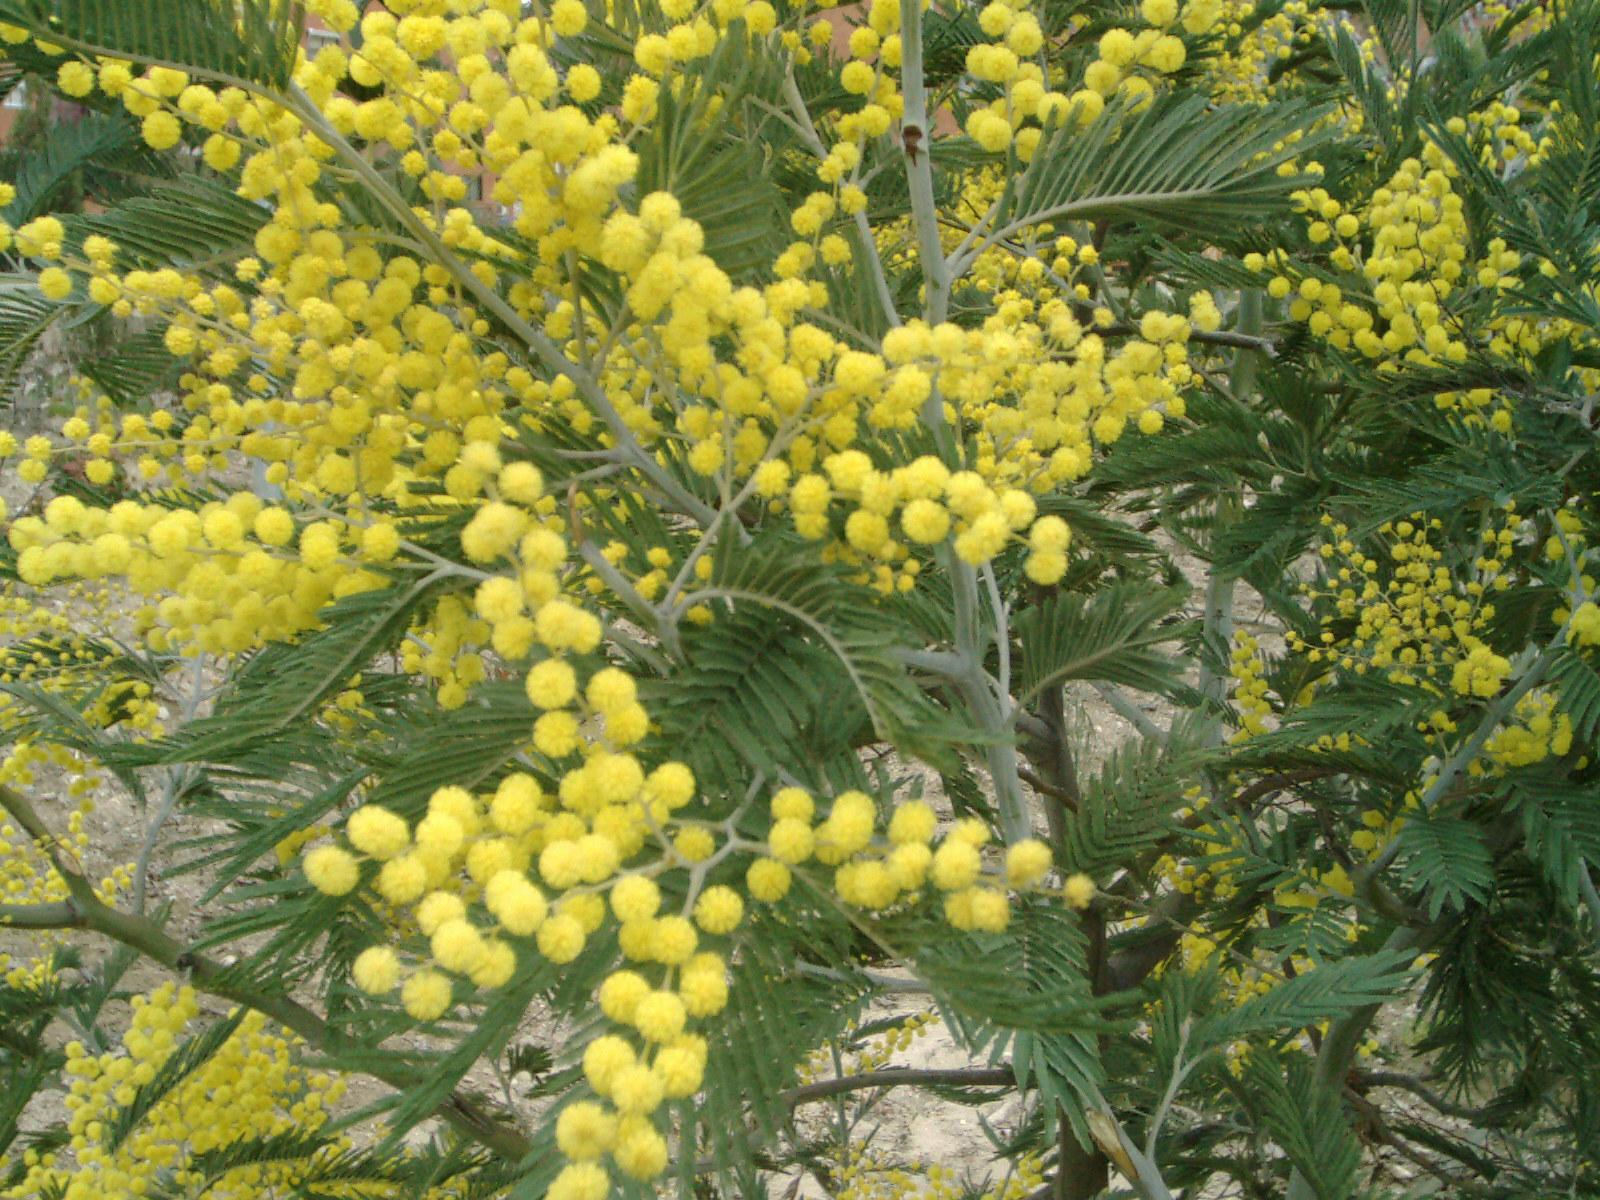 Acacia | Definition of Acacia by Merriam-Webster